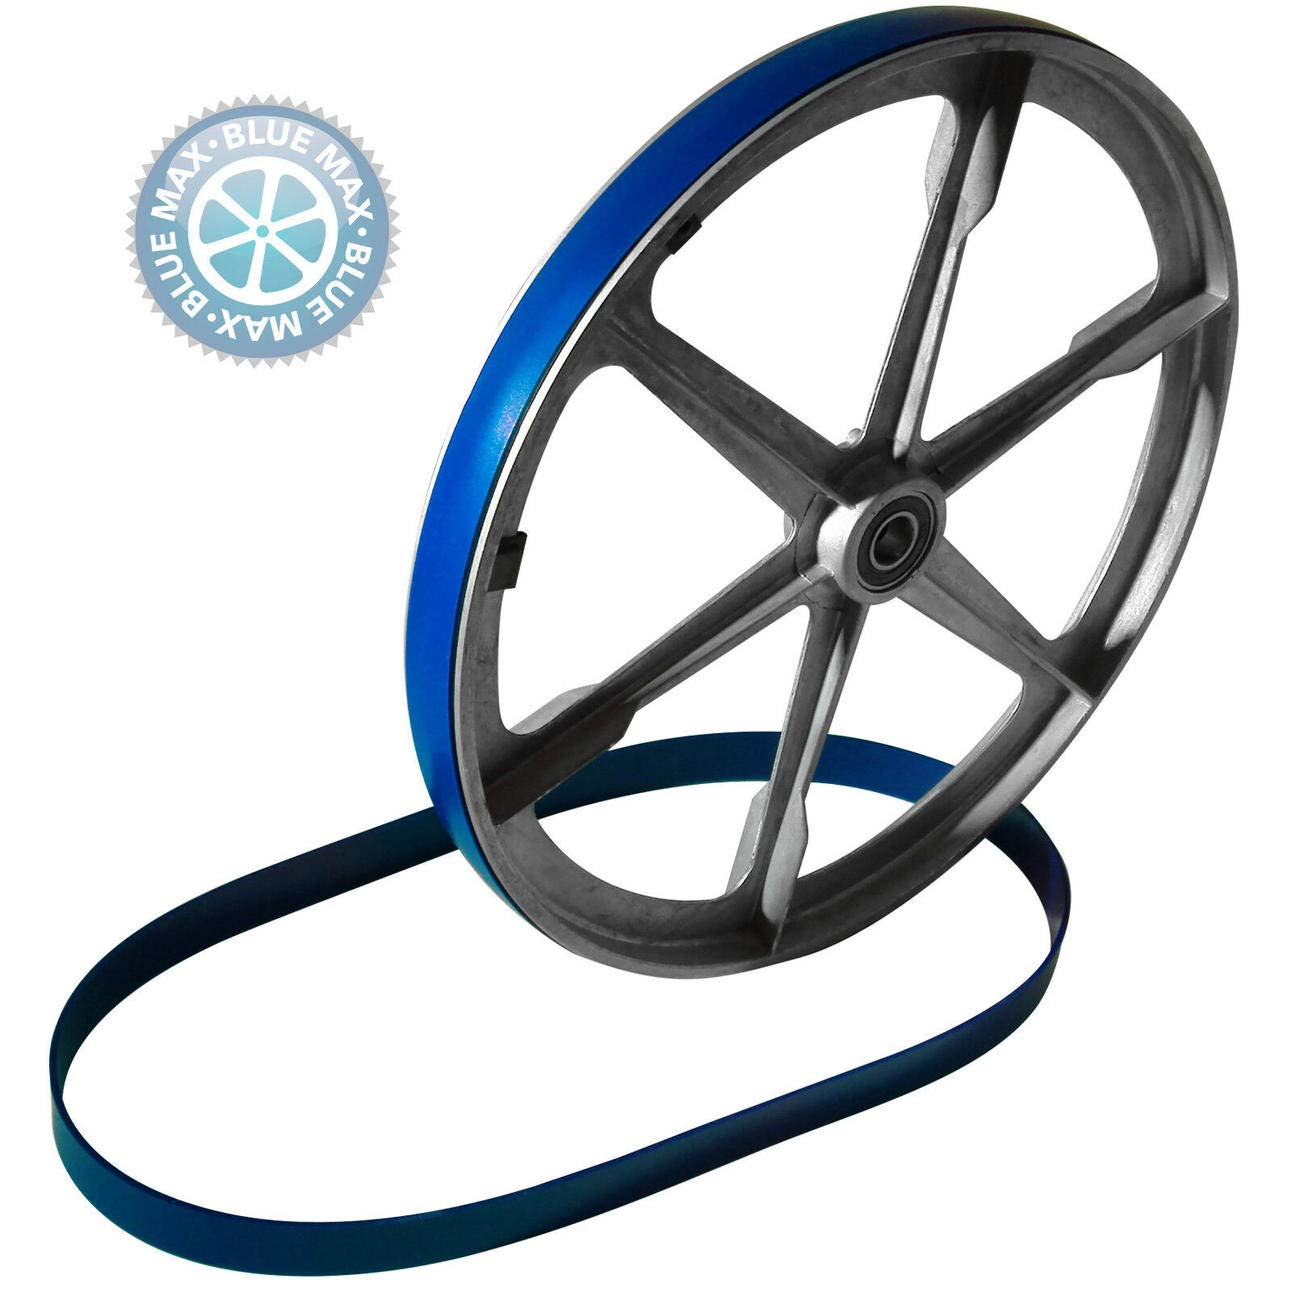 WILTON 9'' BAND SAW MODEL 99162 URETHANE TIRES HEAVY DUTY .095 THICK TIRES